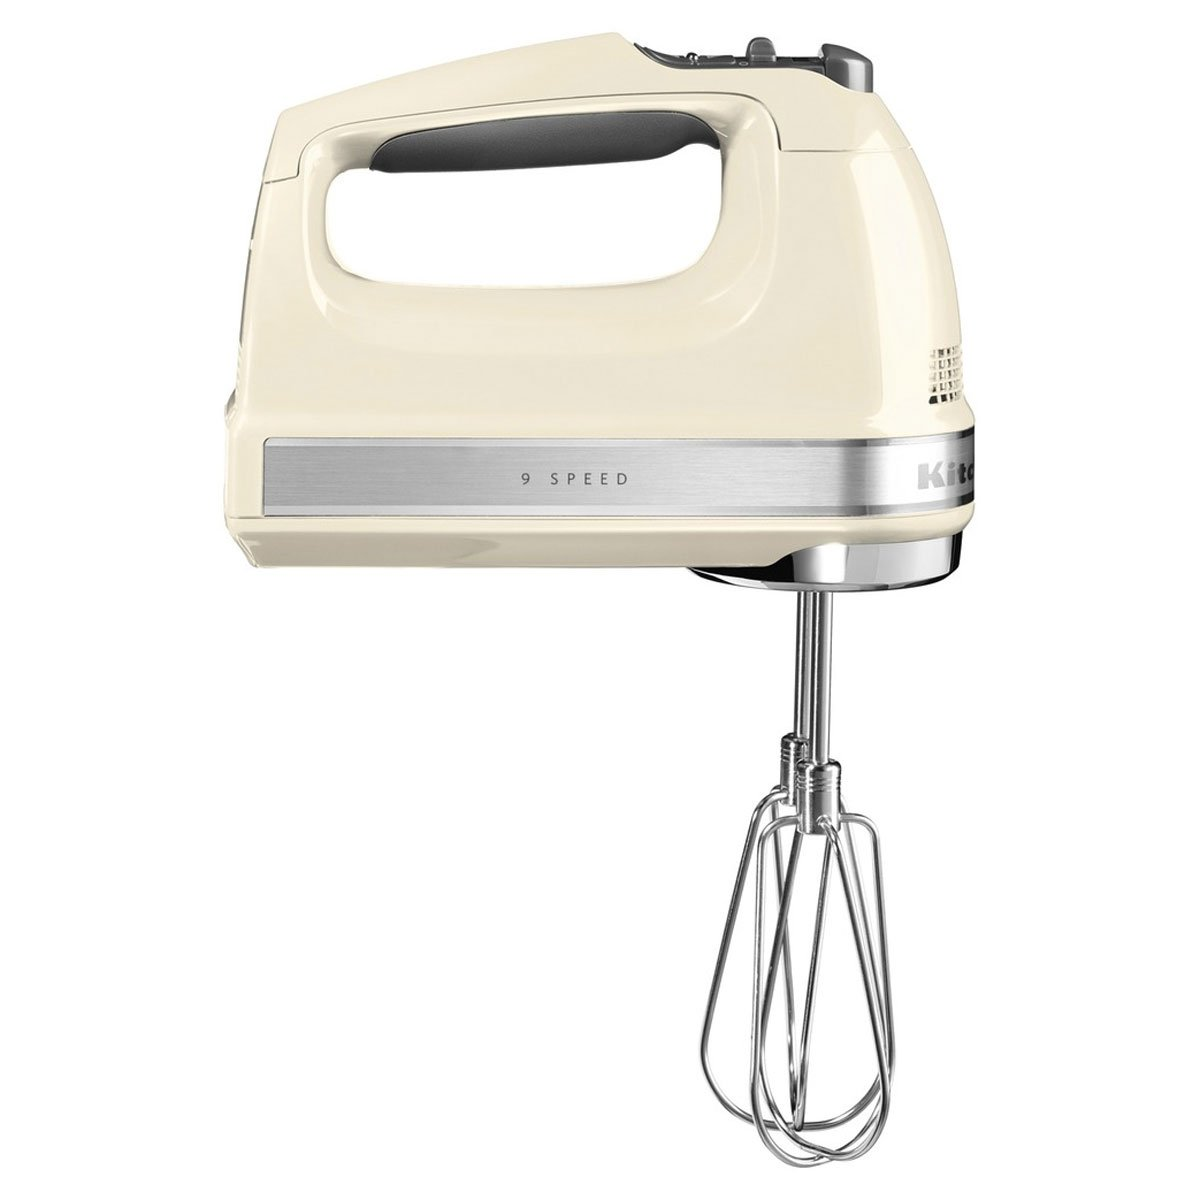 Amazon.de: Kitchenaid 5KHM9212EAC Handrührer, creme